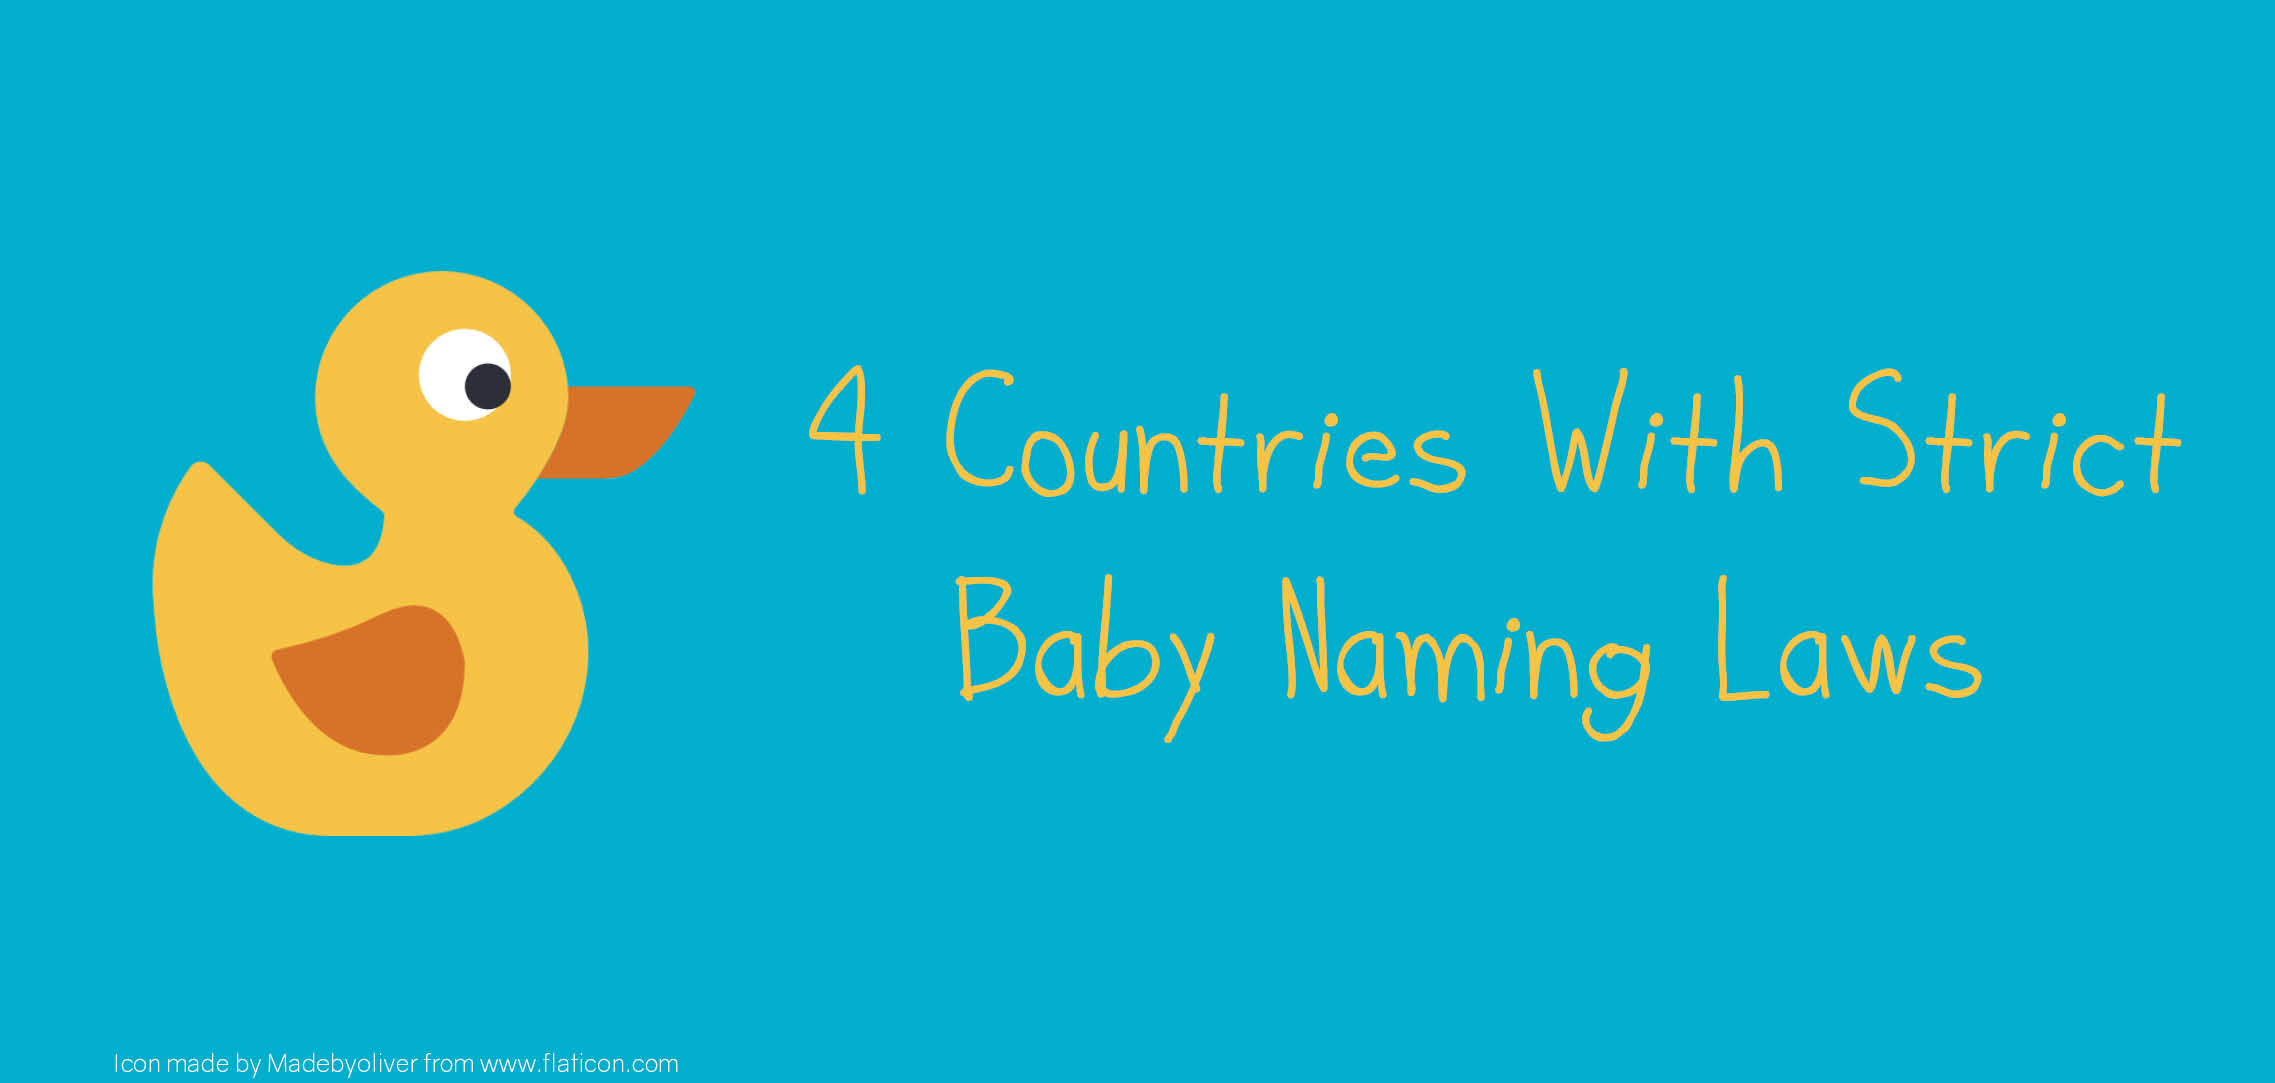 4 Countries With Strict Baby Naming Laws